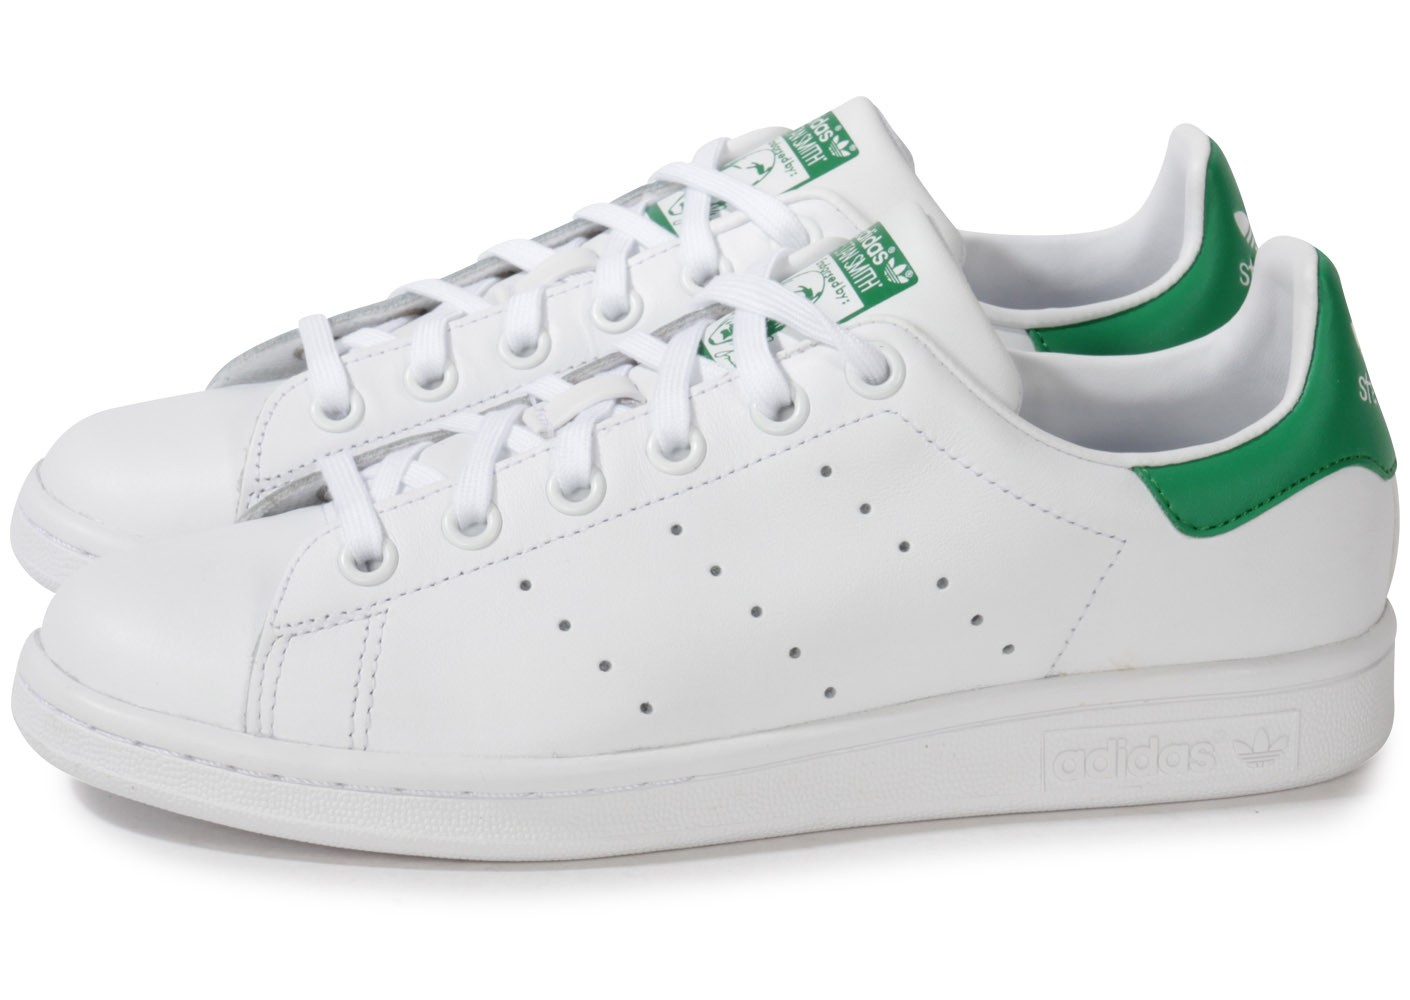 adidas stan smith prix en tunisie